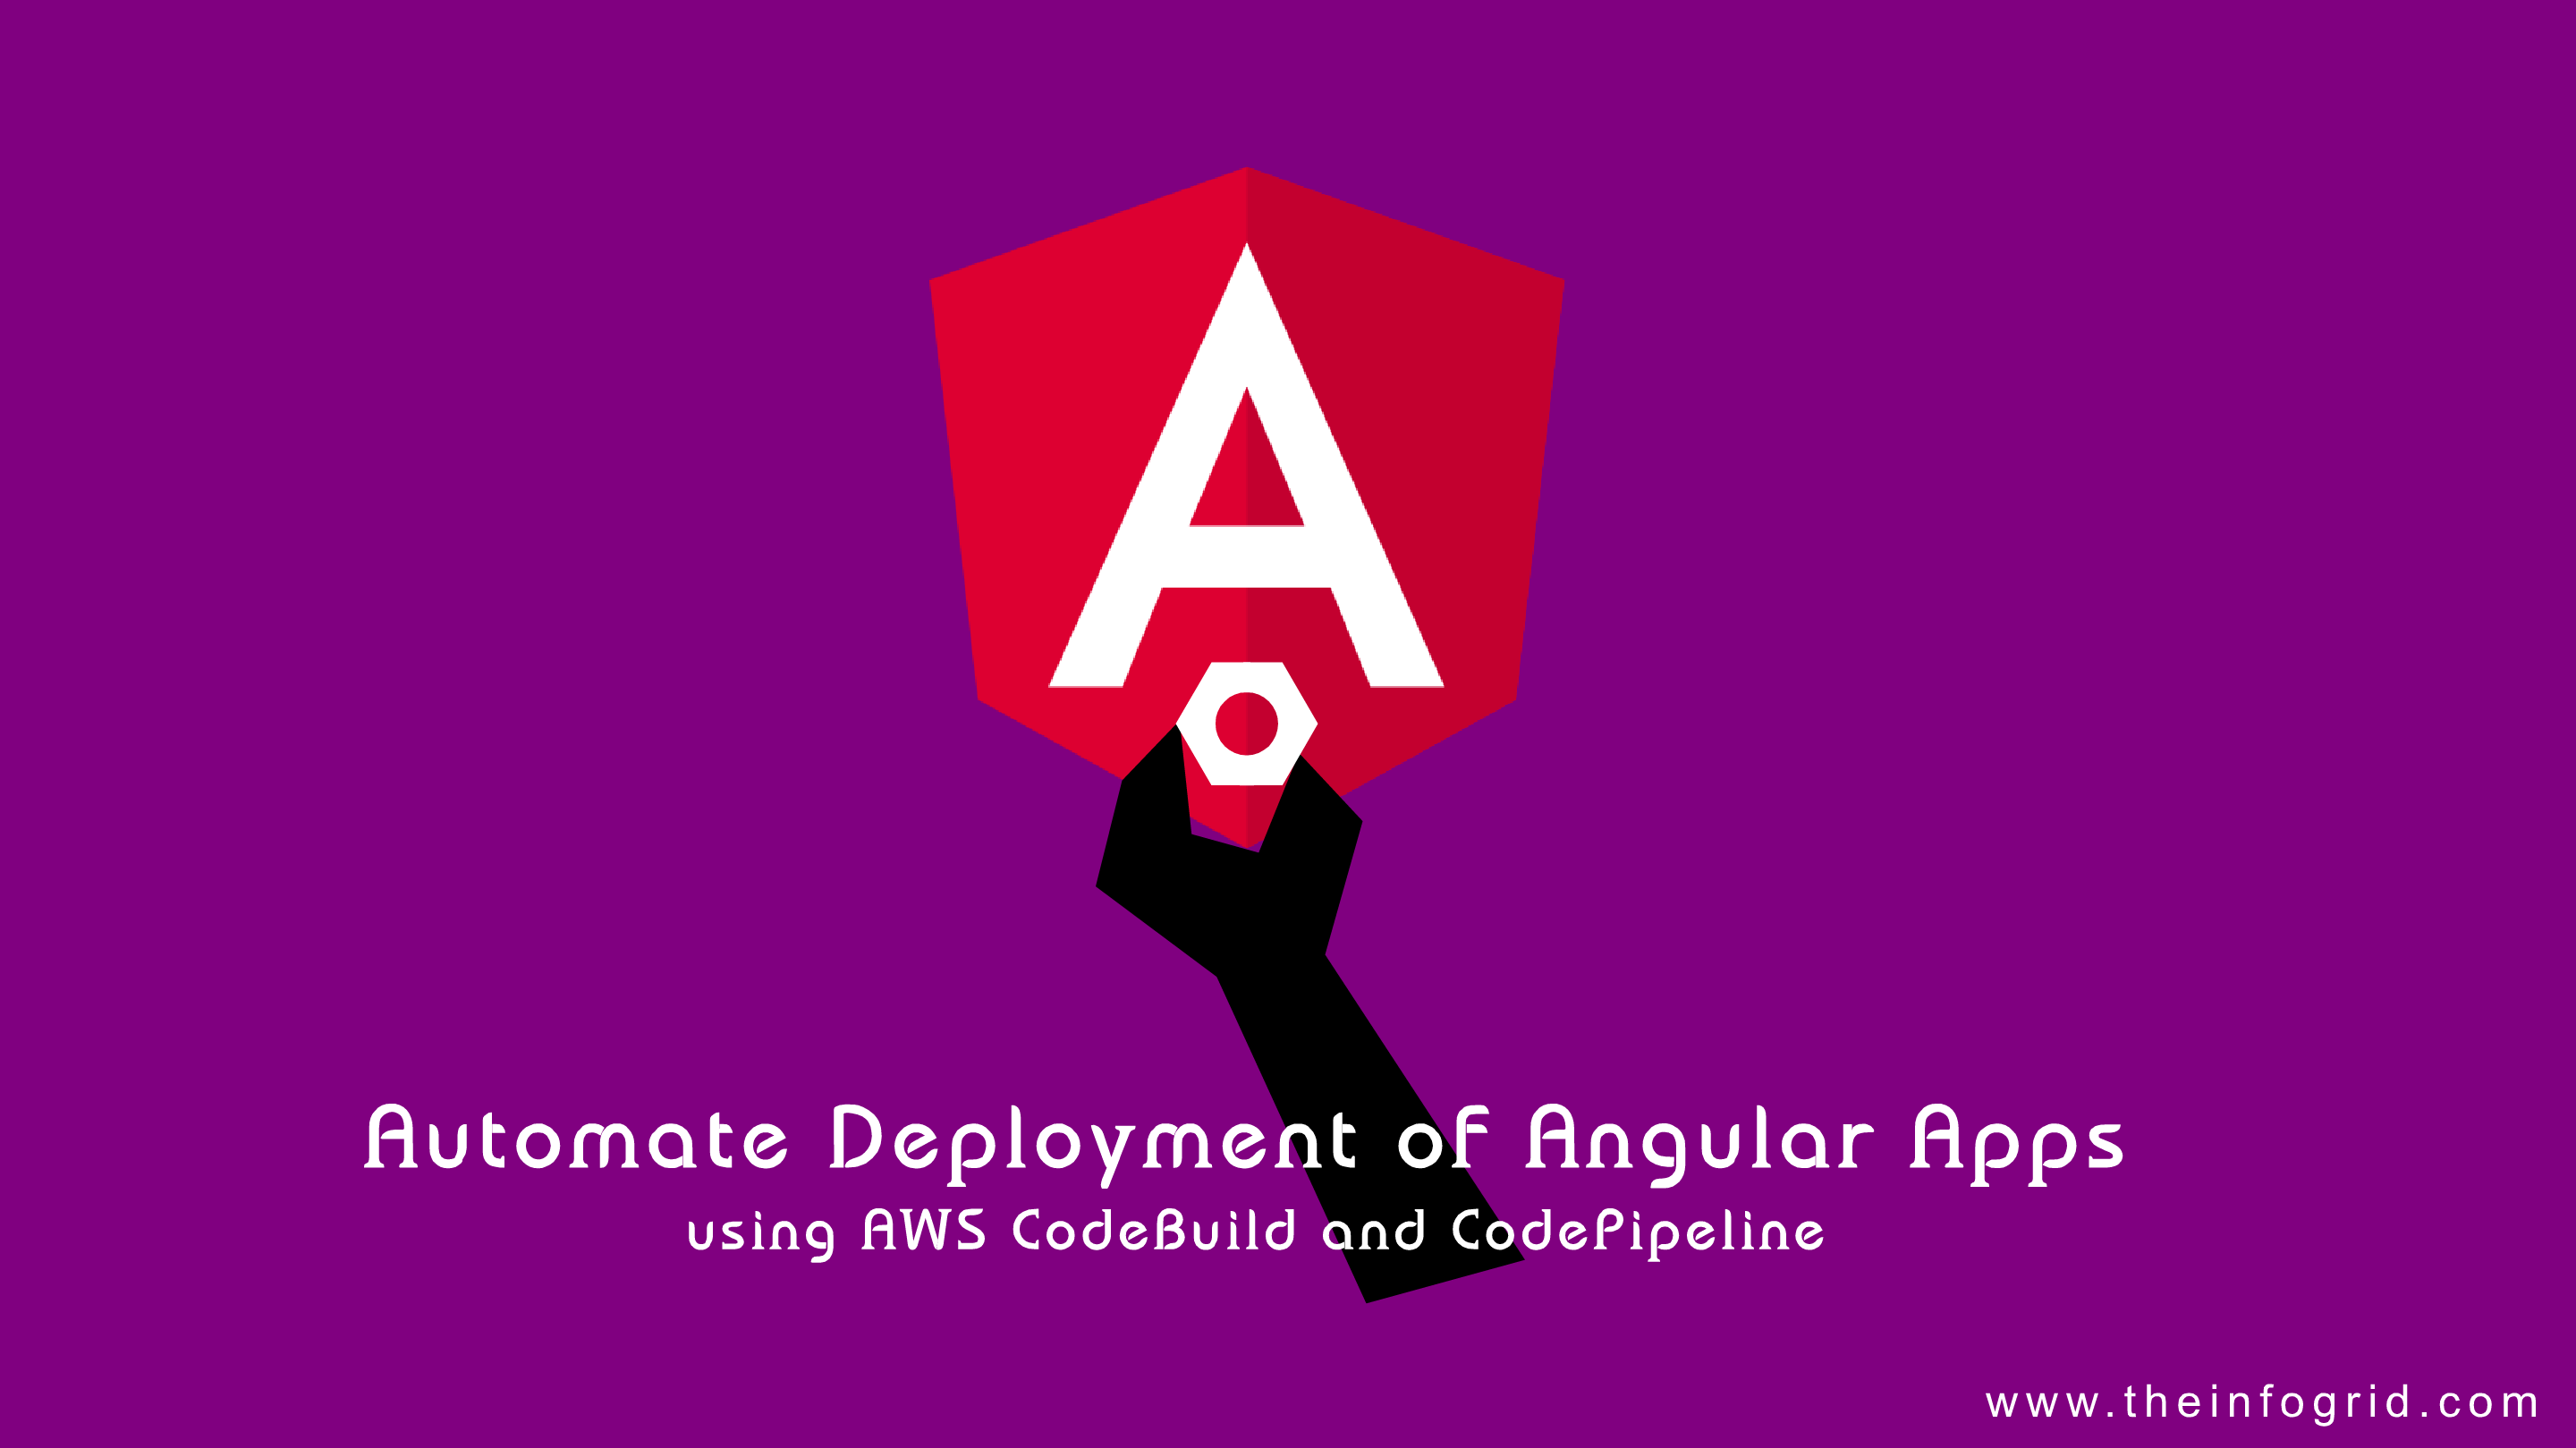 Automate Deployment of Angular Apps using AWS CodeBuild